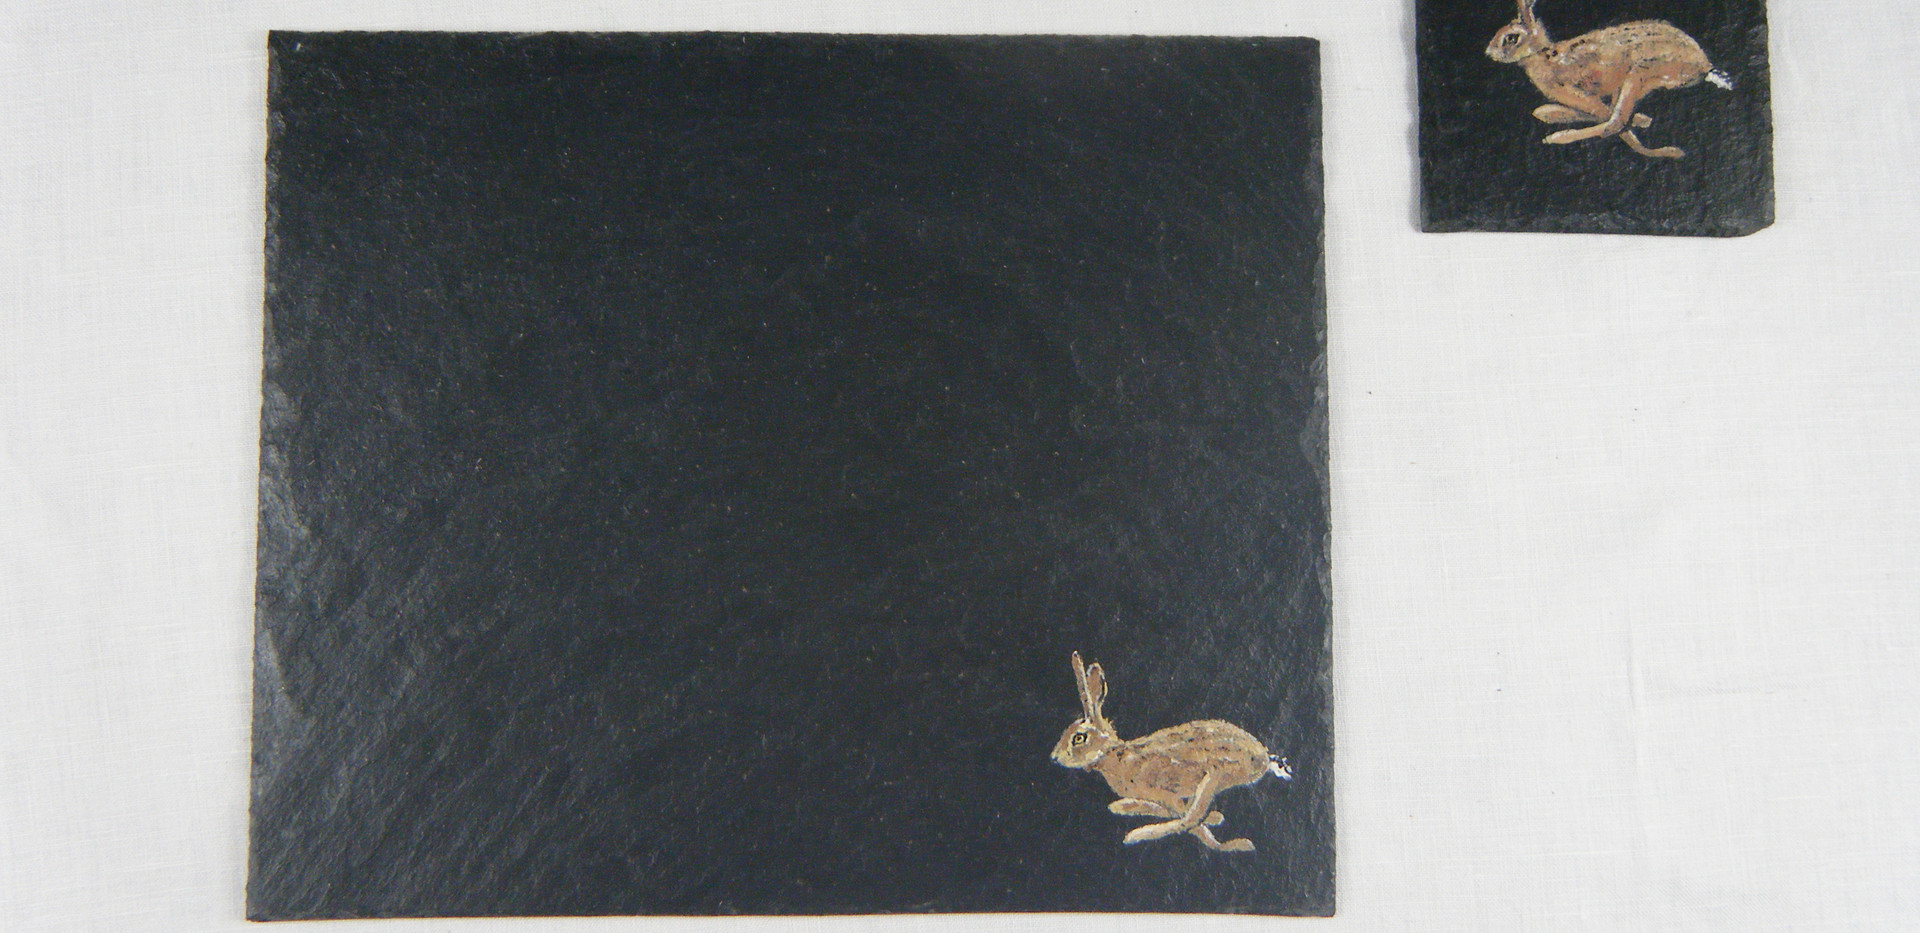 Slate placemat with hare design